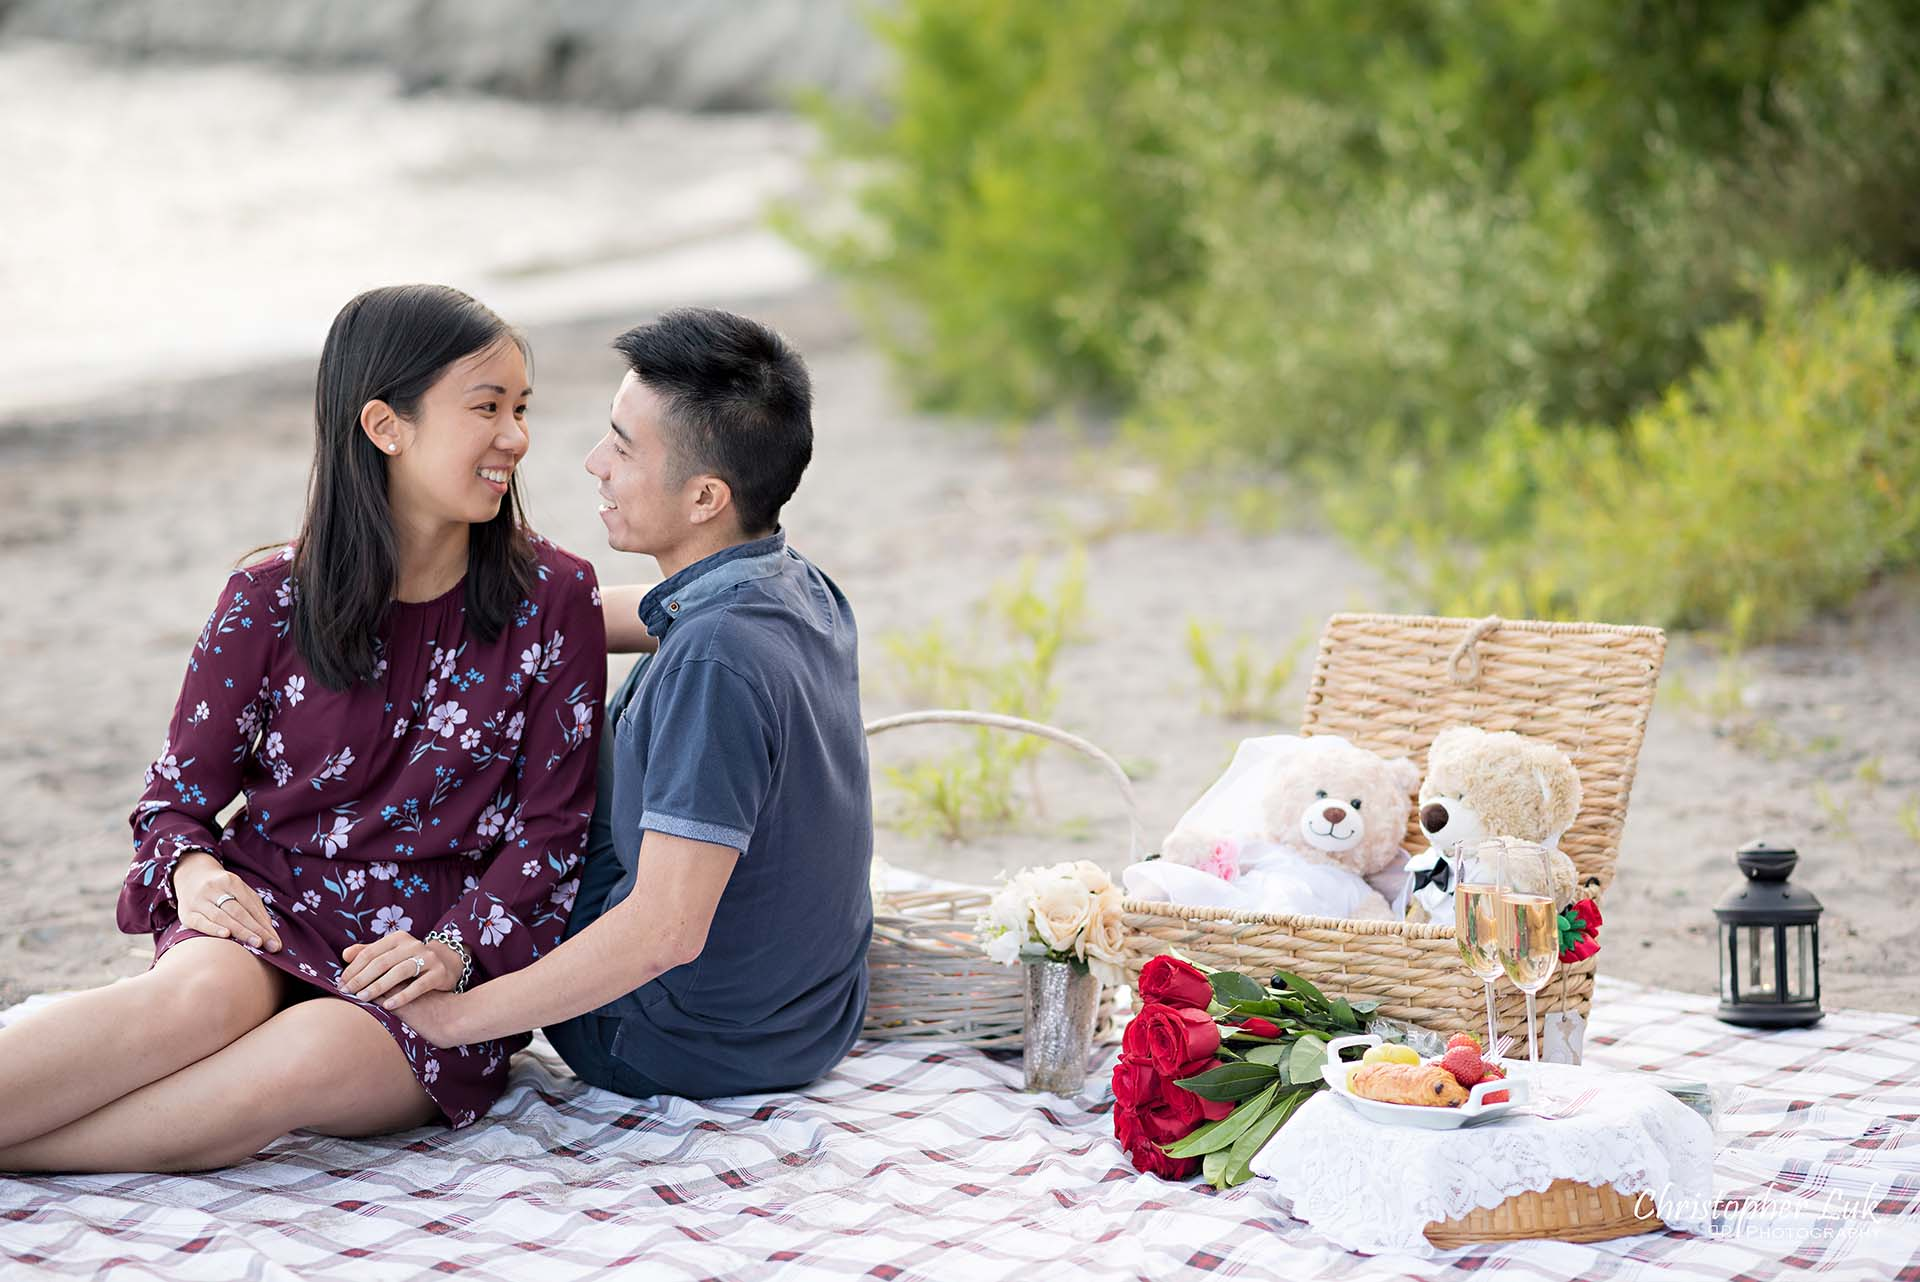 Christopher Luk Toronto Photographer Scarborough Bluffs Beach Park Sunset Surprise Wedding Marriage Engagement Proposal Candid Natural Photojournalistic Bride Groom Picnic Blanket Basket Teddy Bears Sitting Together Laughing Smiling